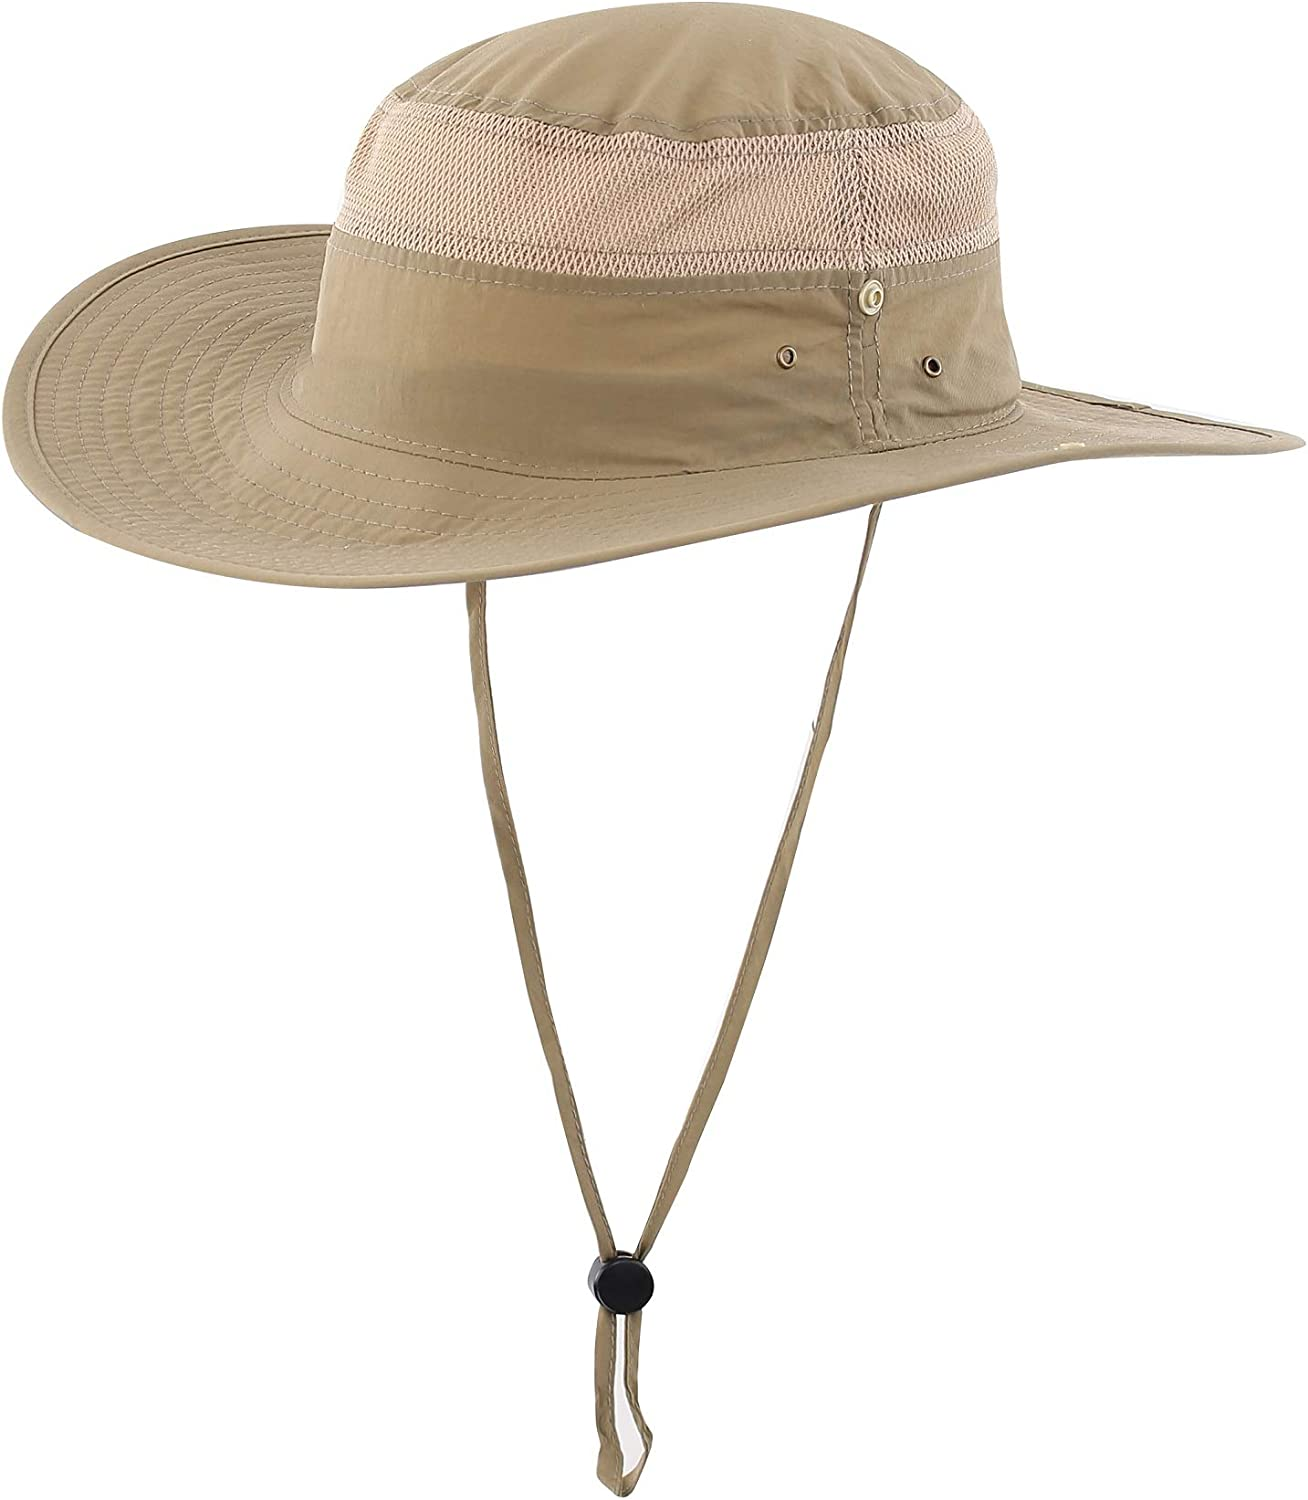 Connectyle Outdoor Mesh Sun Hat Wide Brim UV Sun Protection Hat Fishing Hiking Hat